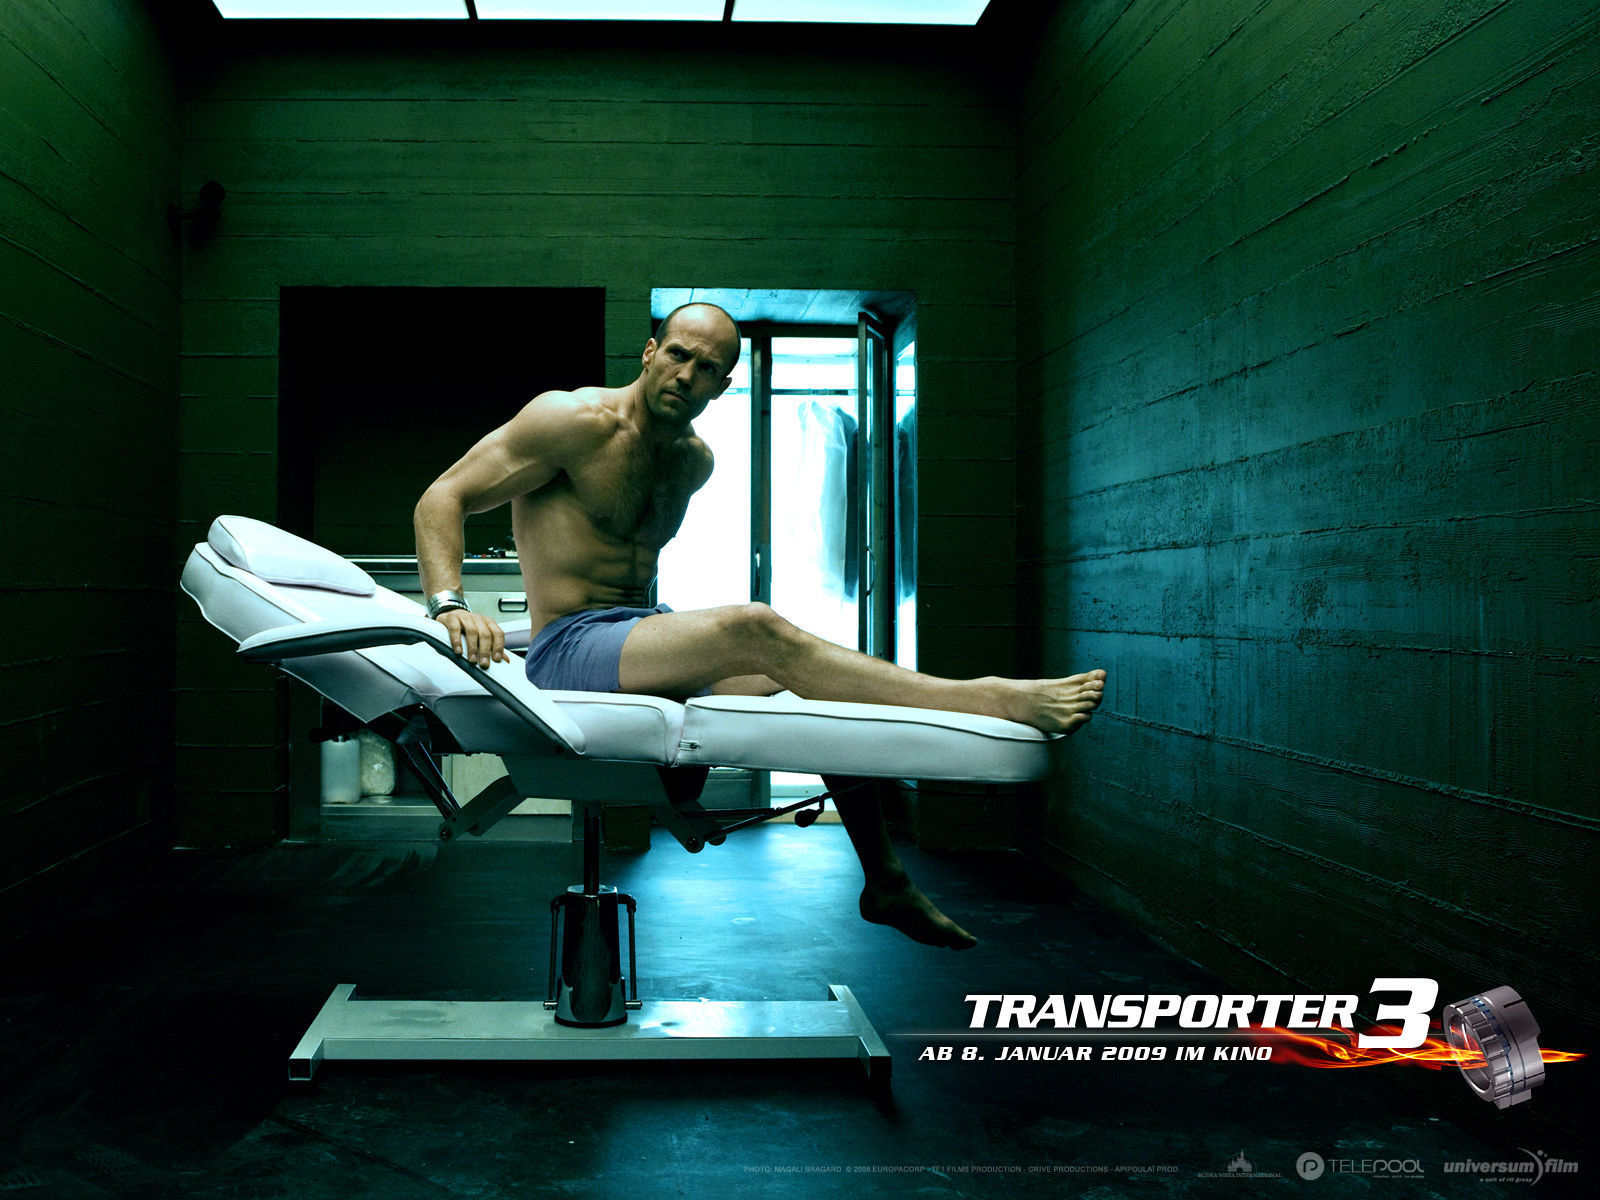 transporter 3 upcoming movies wallpaper 2877548 fanpop. Black Bedroom Furniture Sets. Home Design Ideas